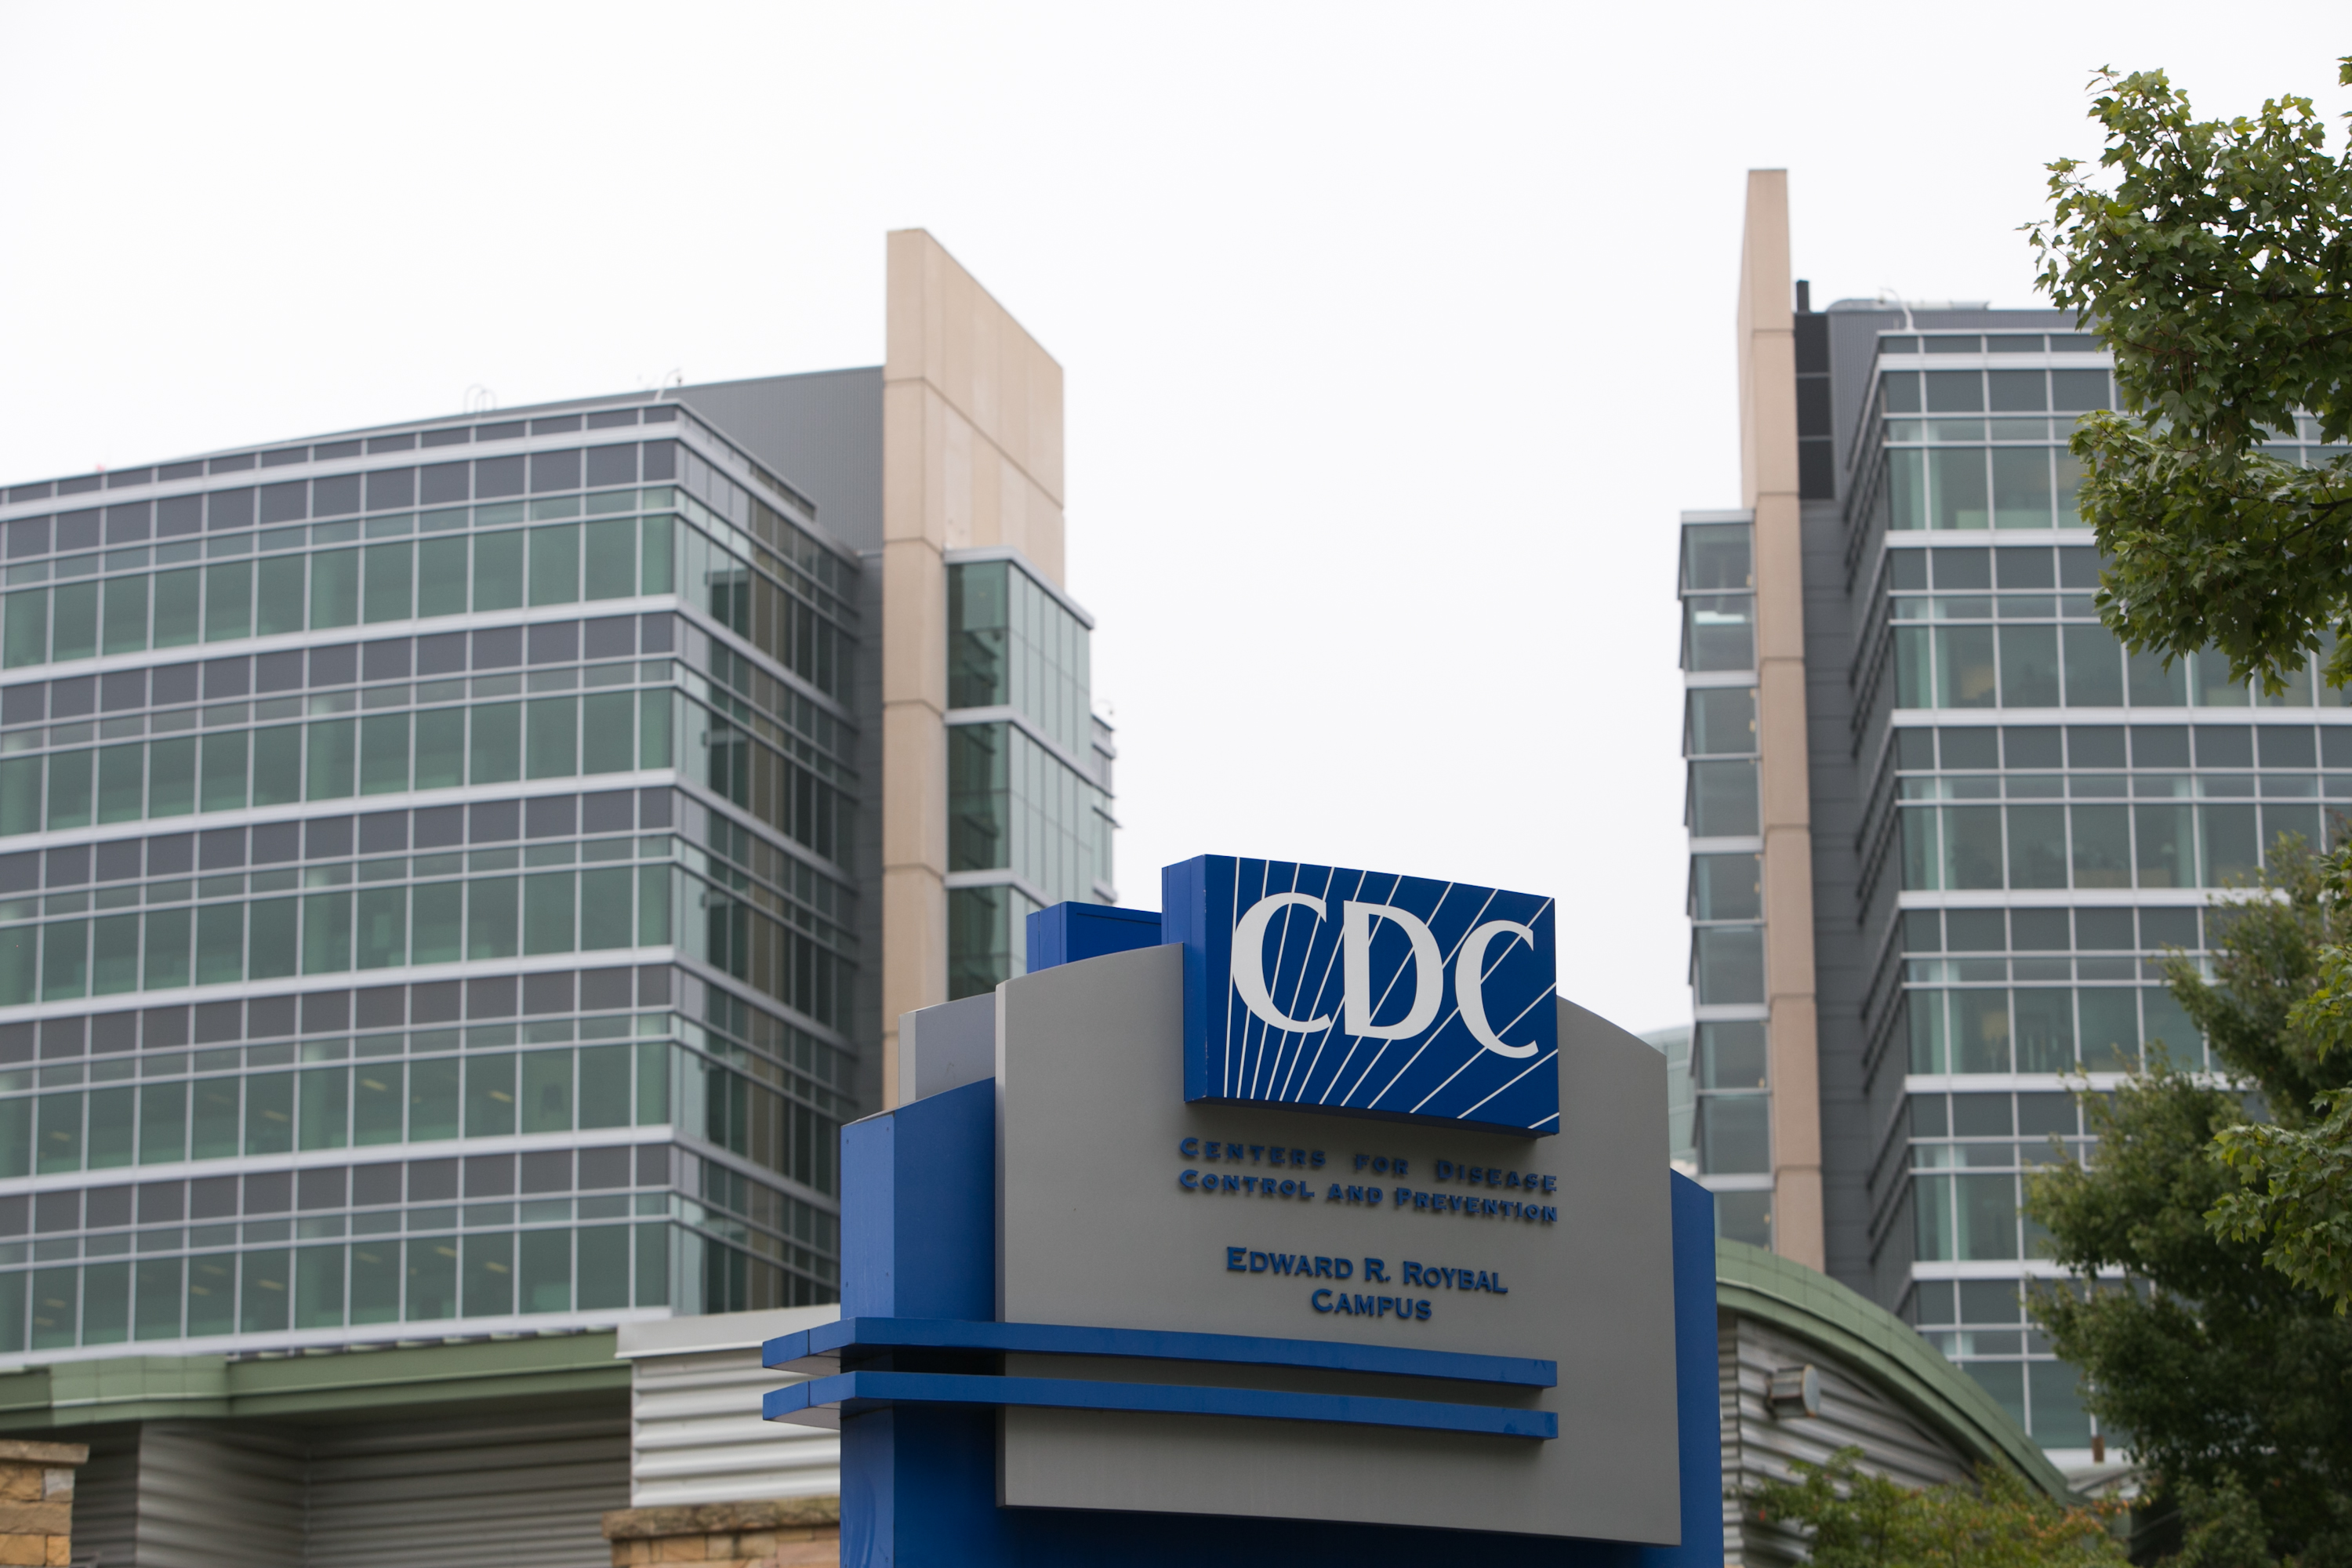 Exterior of CDC headquarters is seen on October 13, 2014 in Atlanta, Georgia.